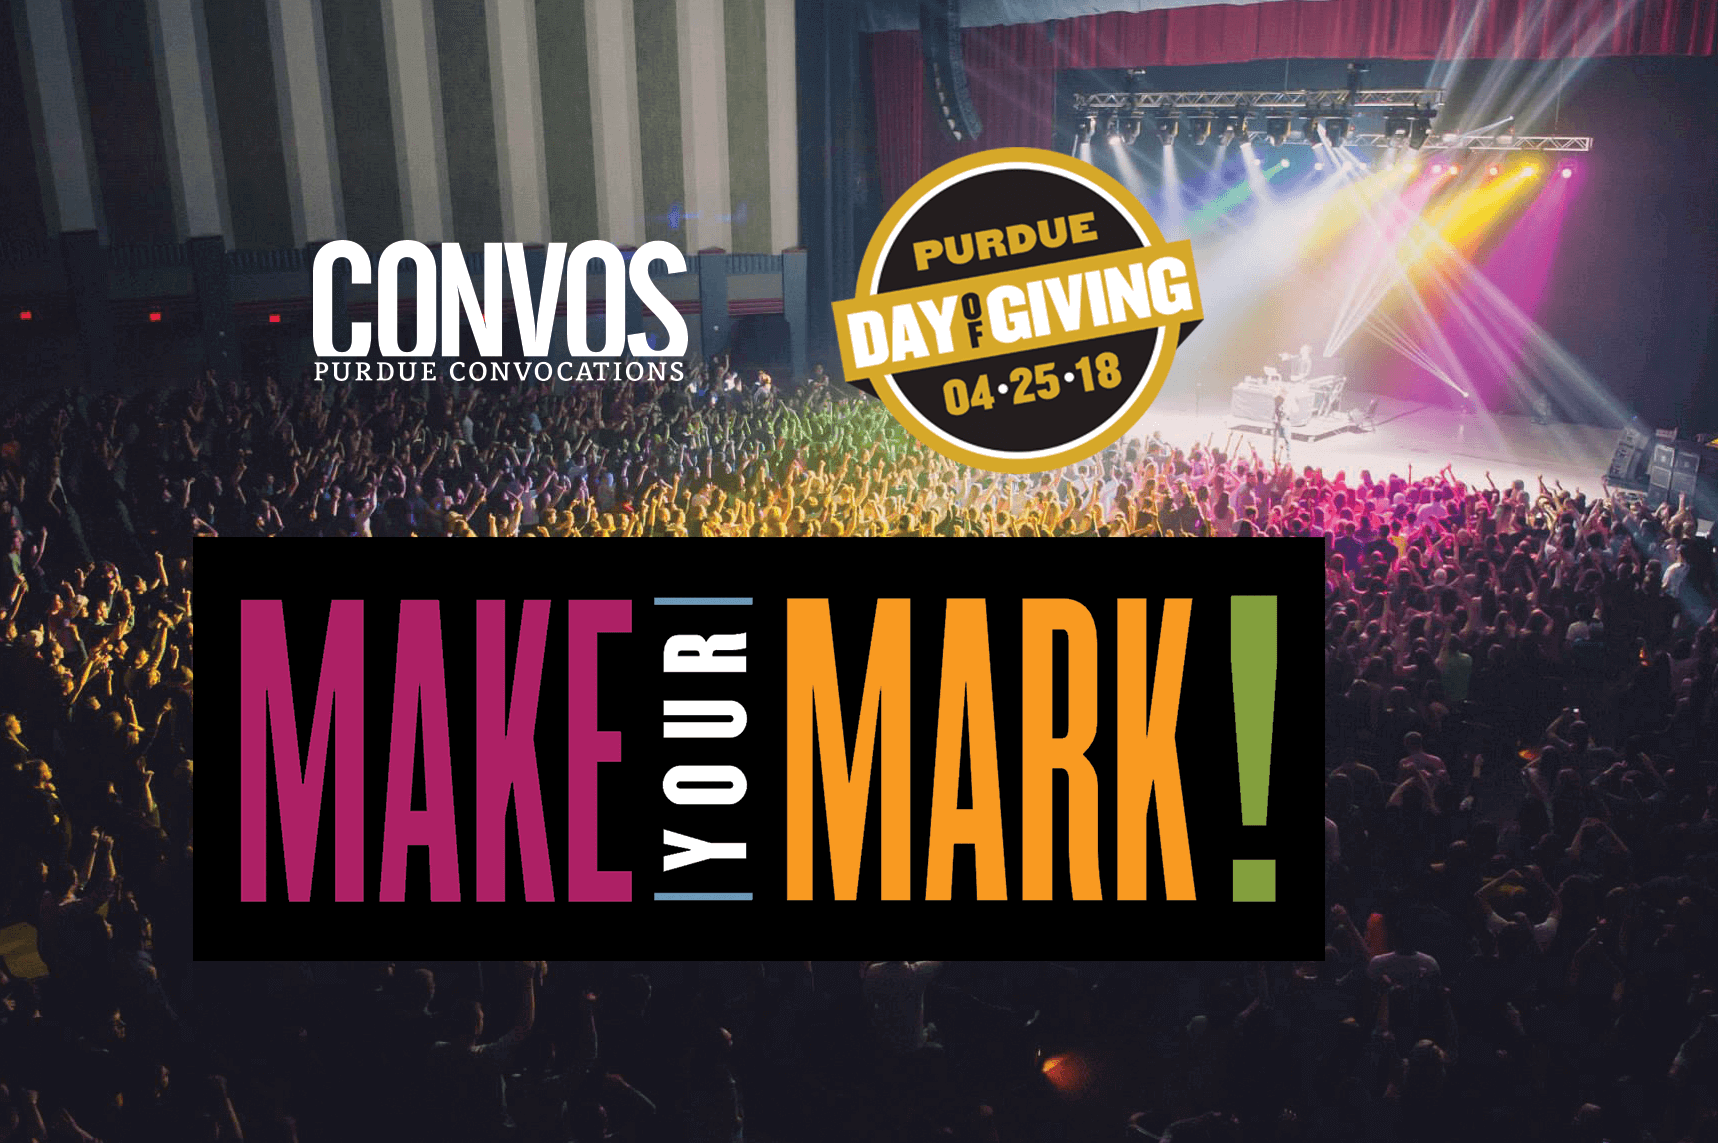 Mark Your Mark on Purdue Convocations - Purdue Day of Giving April 25, 2018